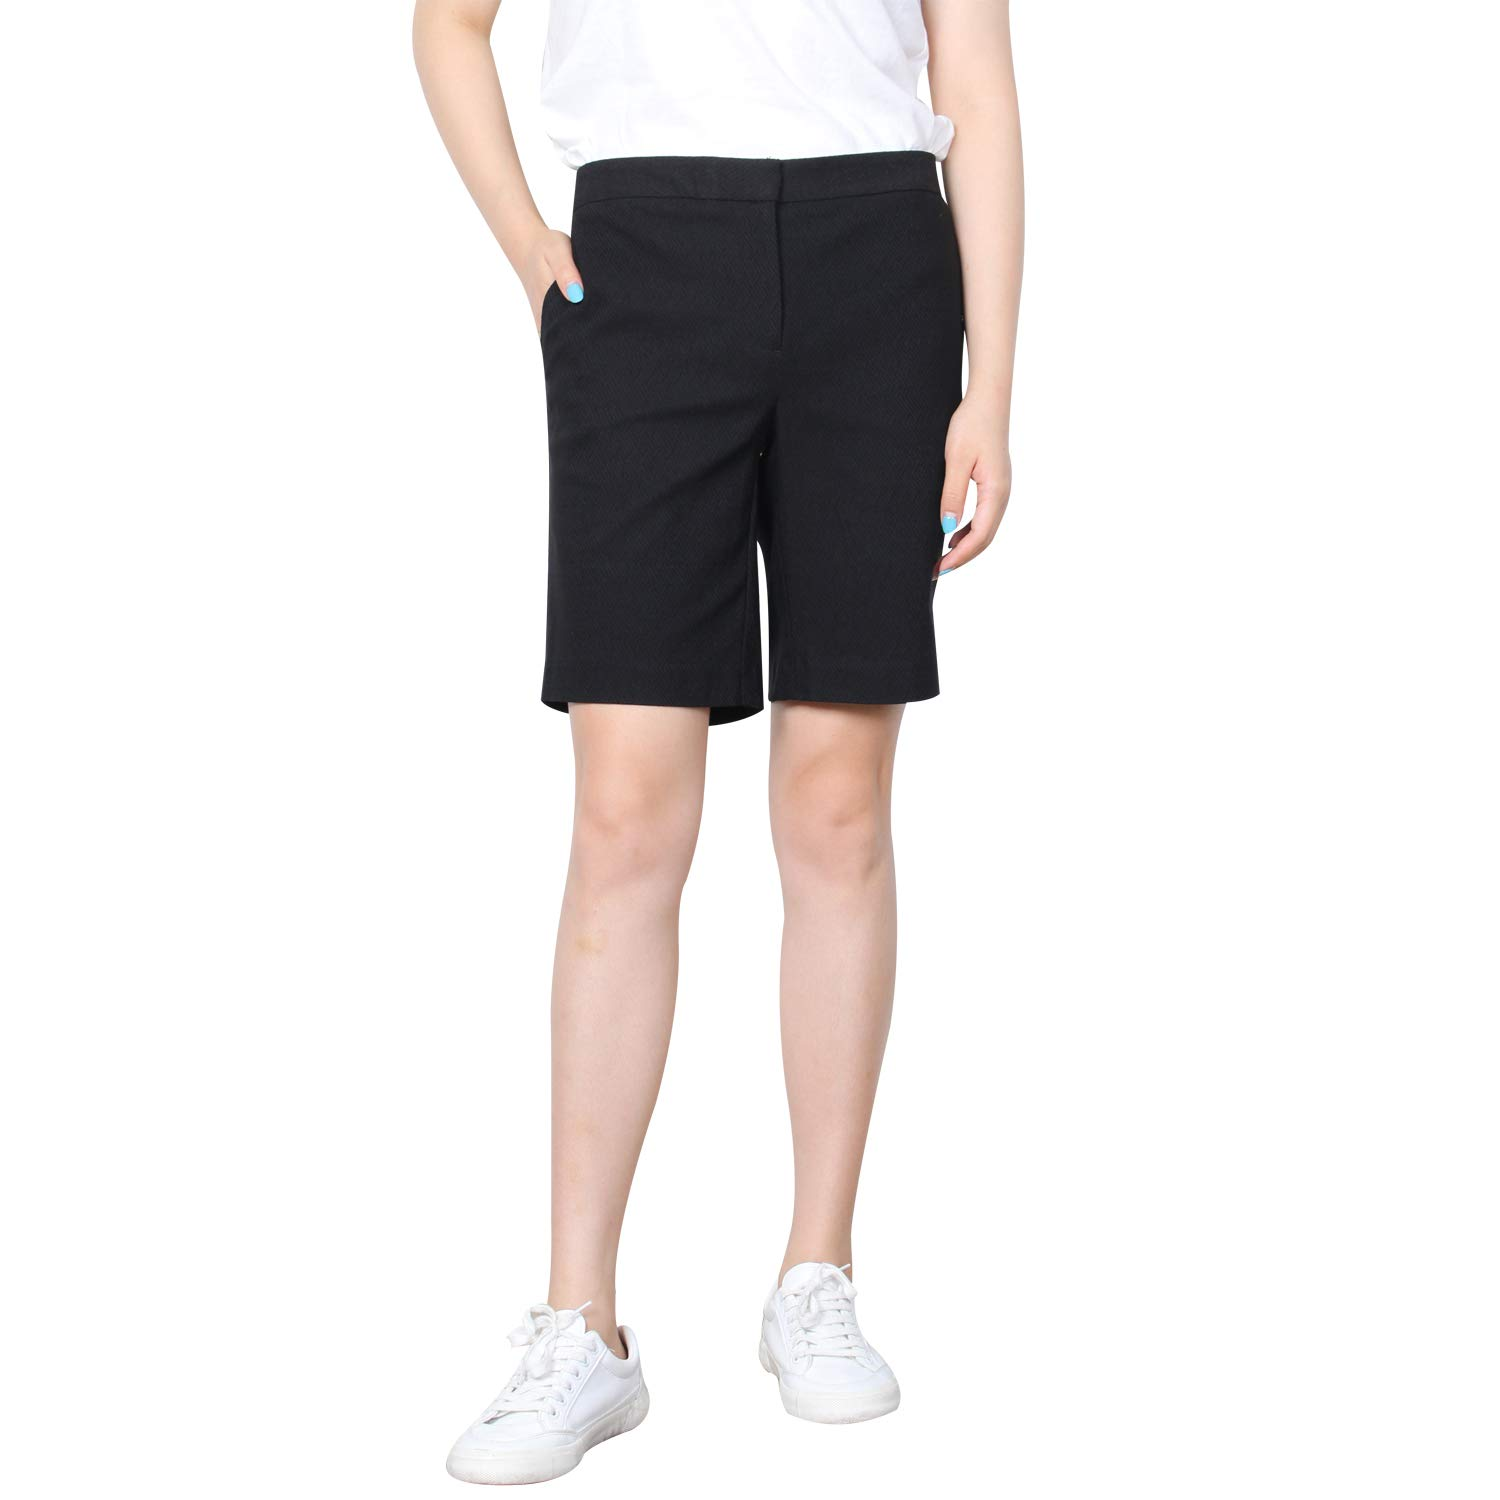 KELLY KLARK Women's Solid Casual Shorts, 9'' Inseam Soft Chino Shorts, Black, 18 by KELLY KLARK